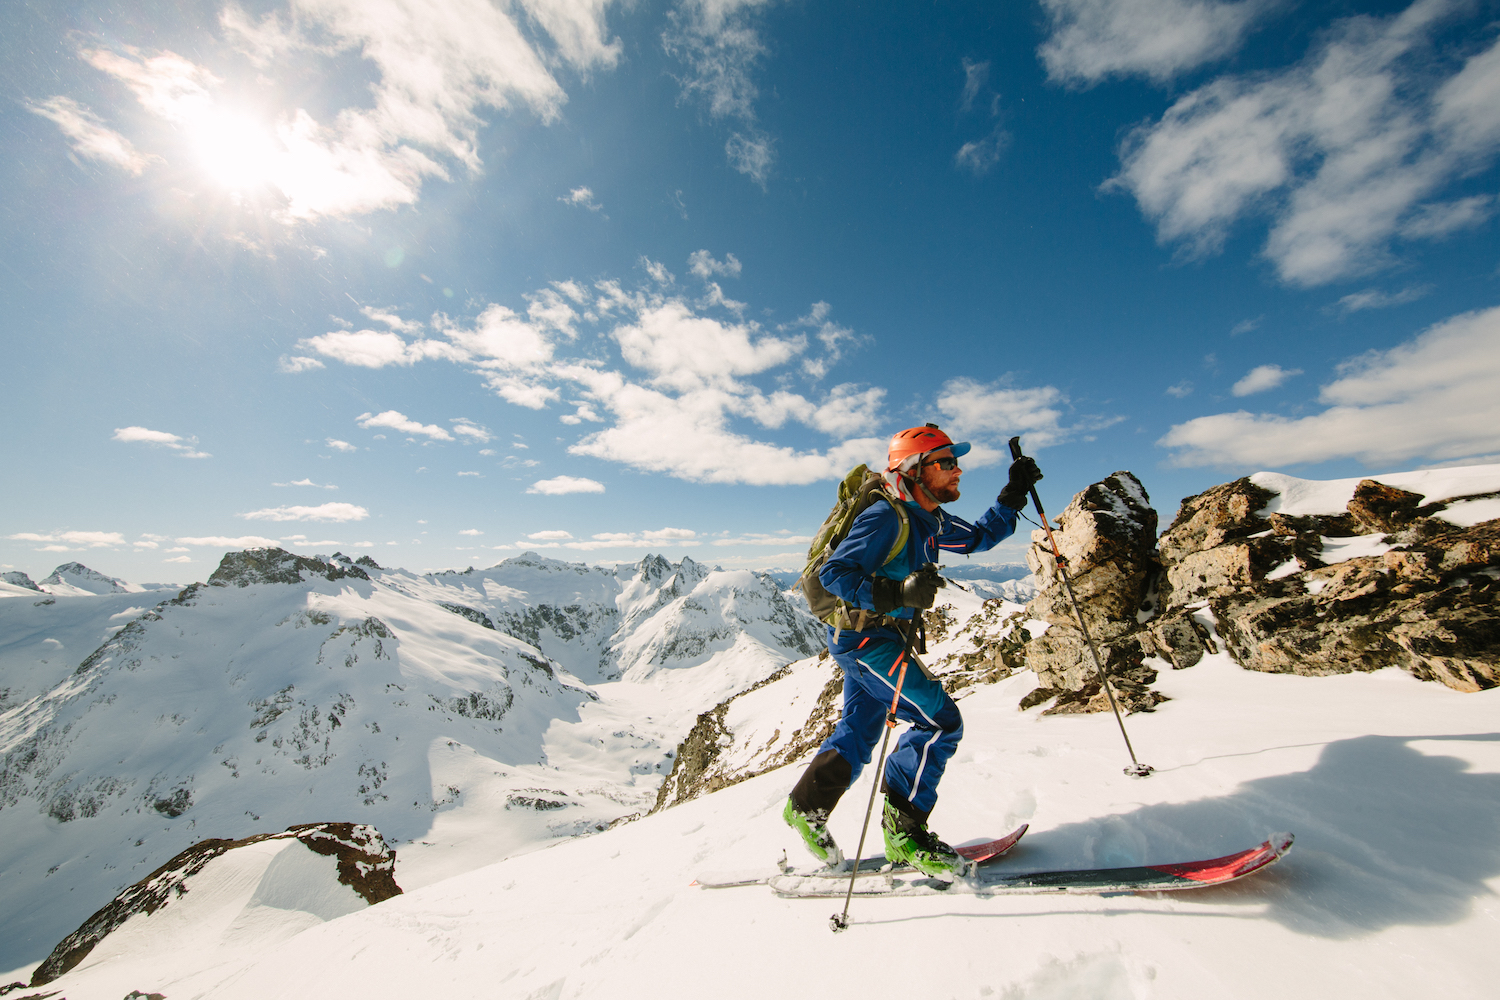 Aaron Rice's Journey to 2.5 Million Human Powered Vertical Feet of Skiing — In One Year